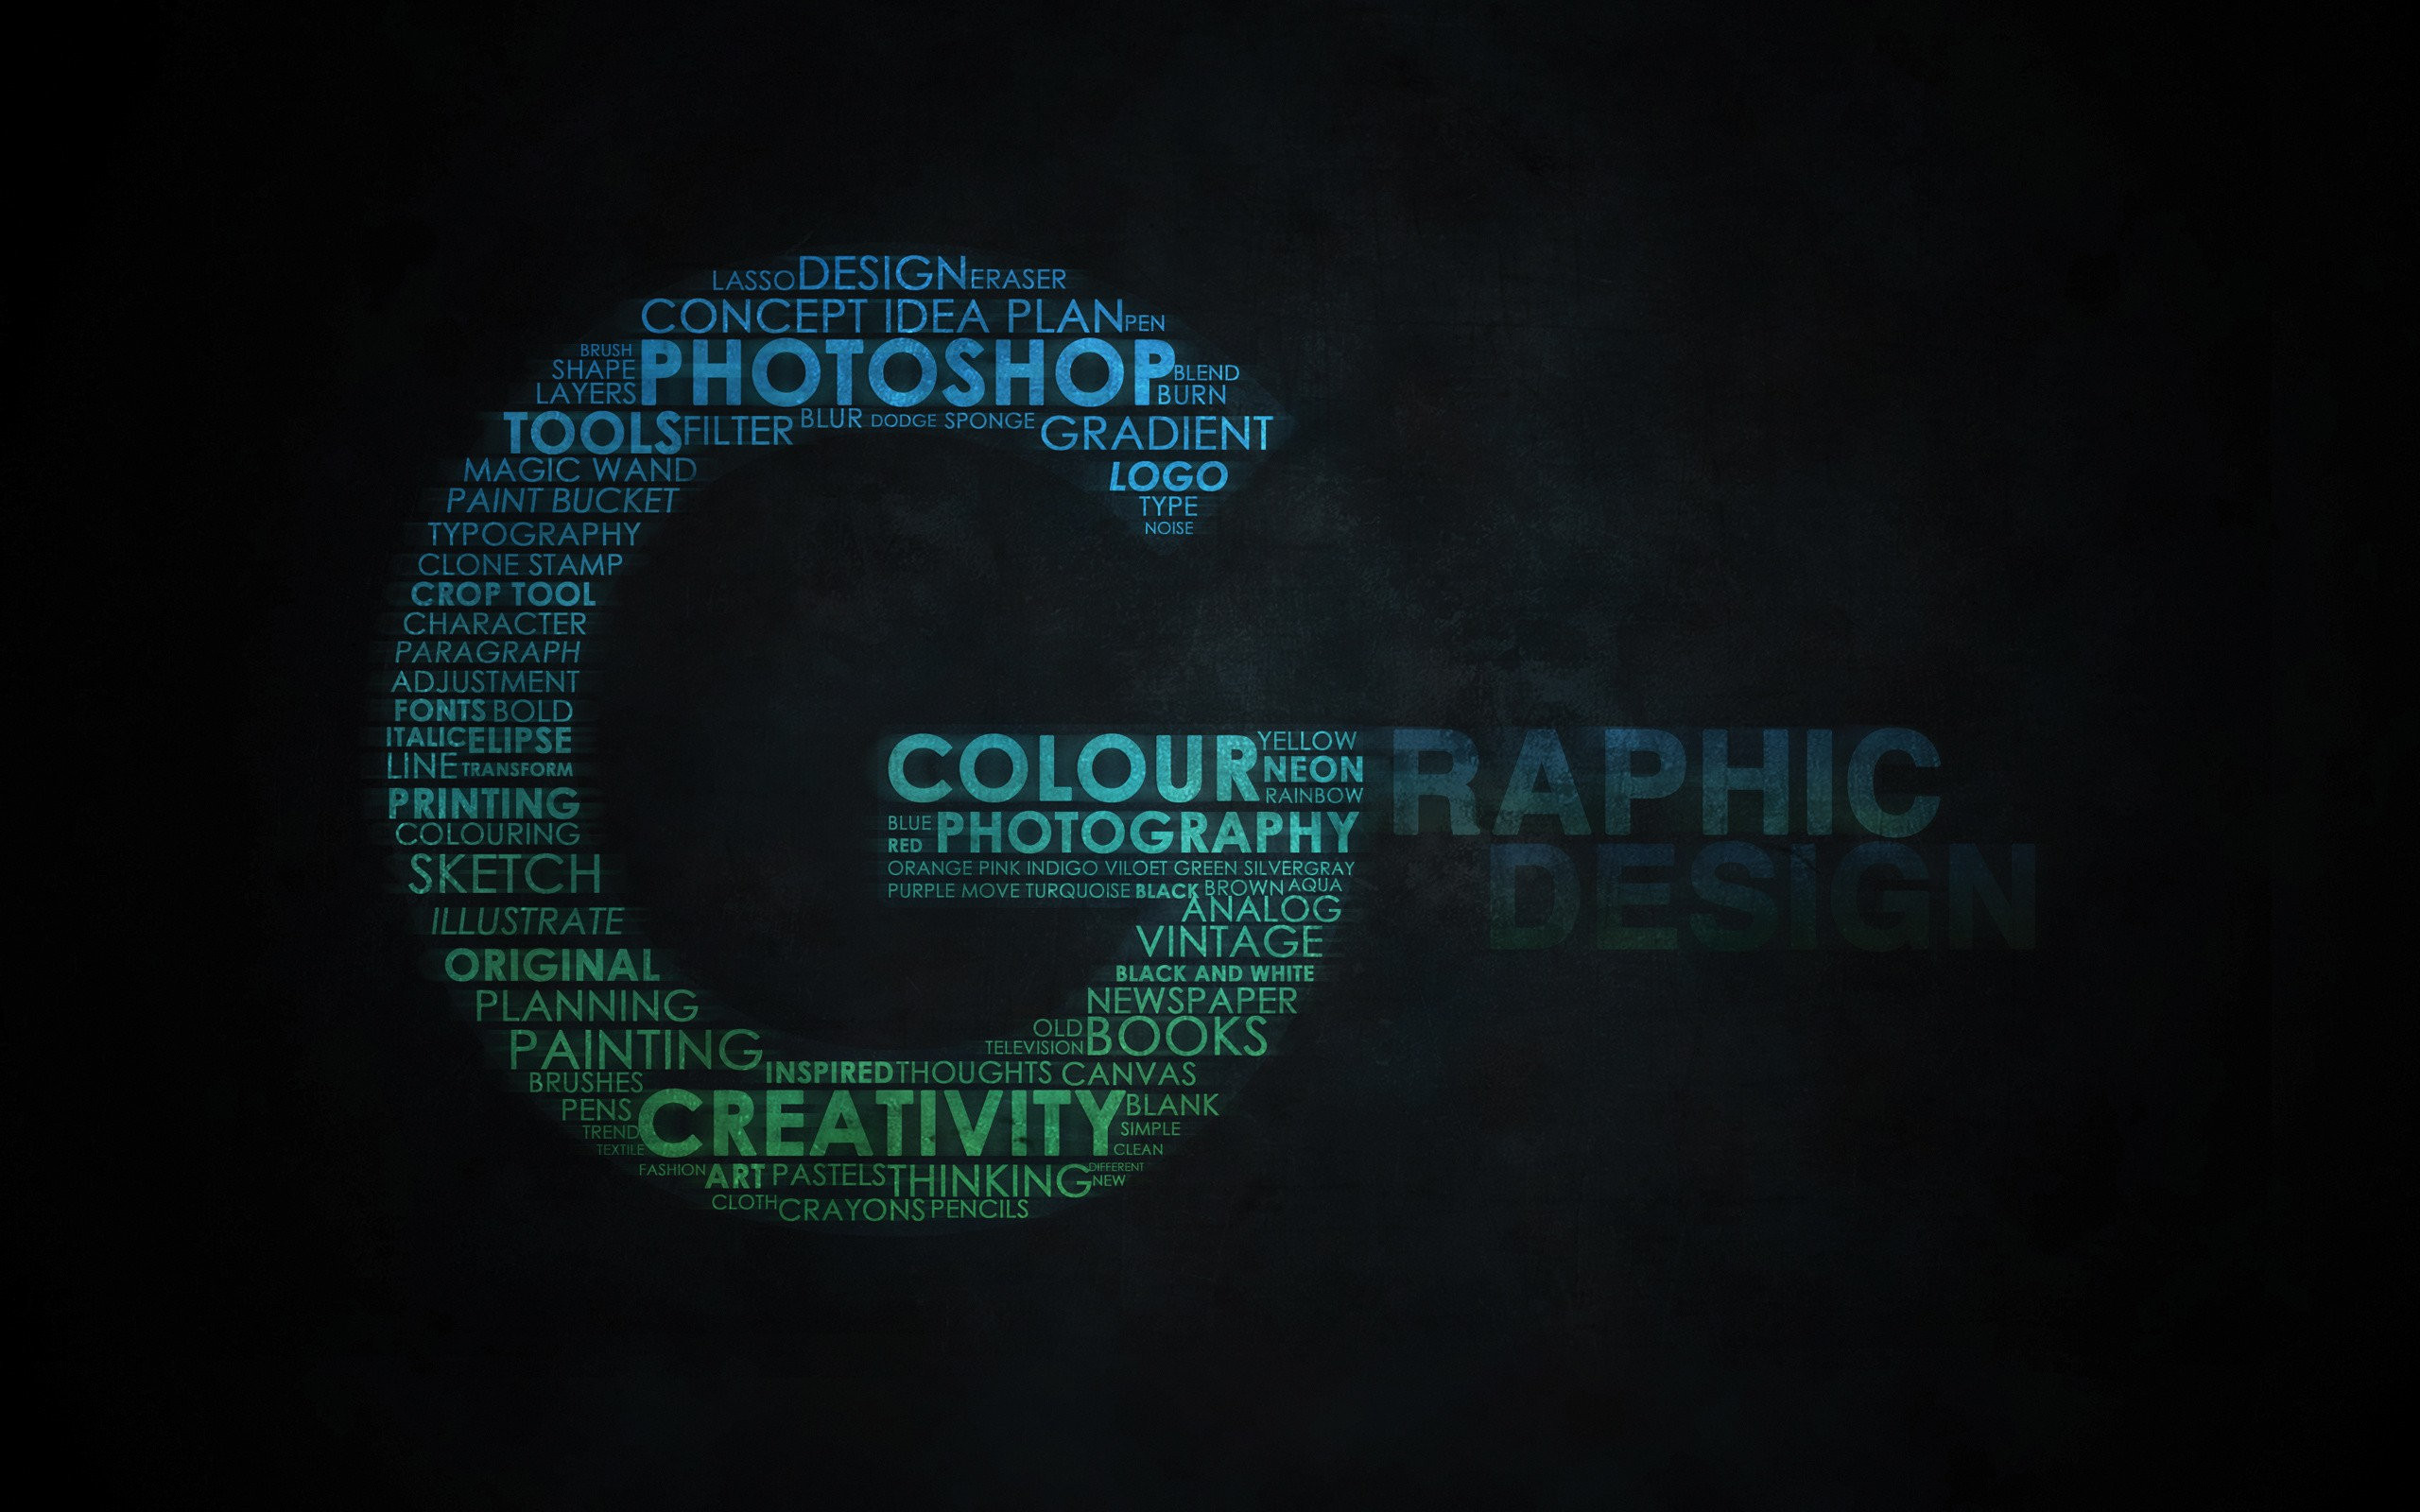 graphic wallpapers for desktop (56+ images)